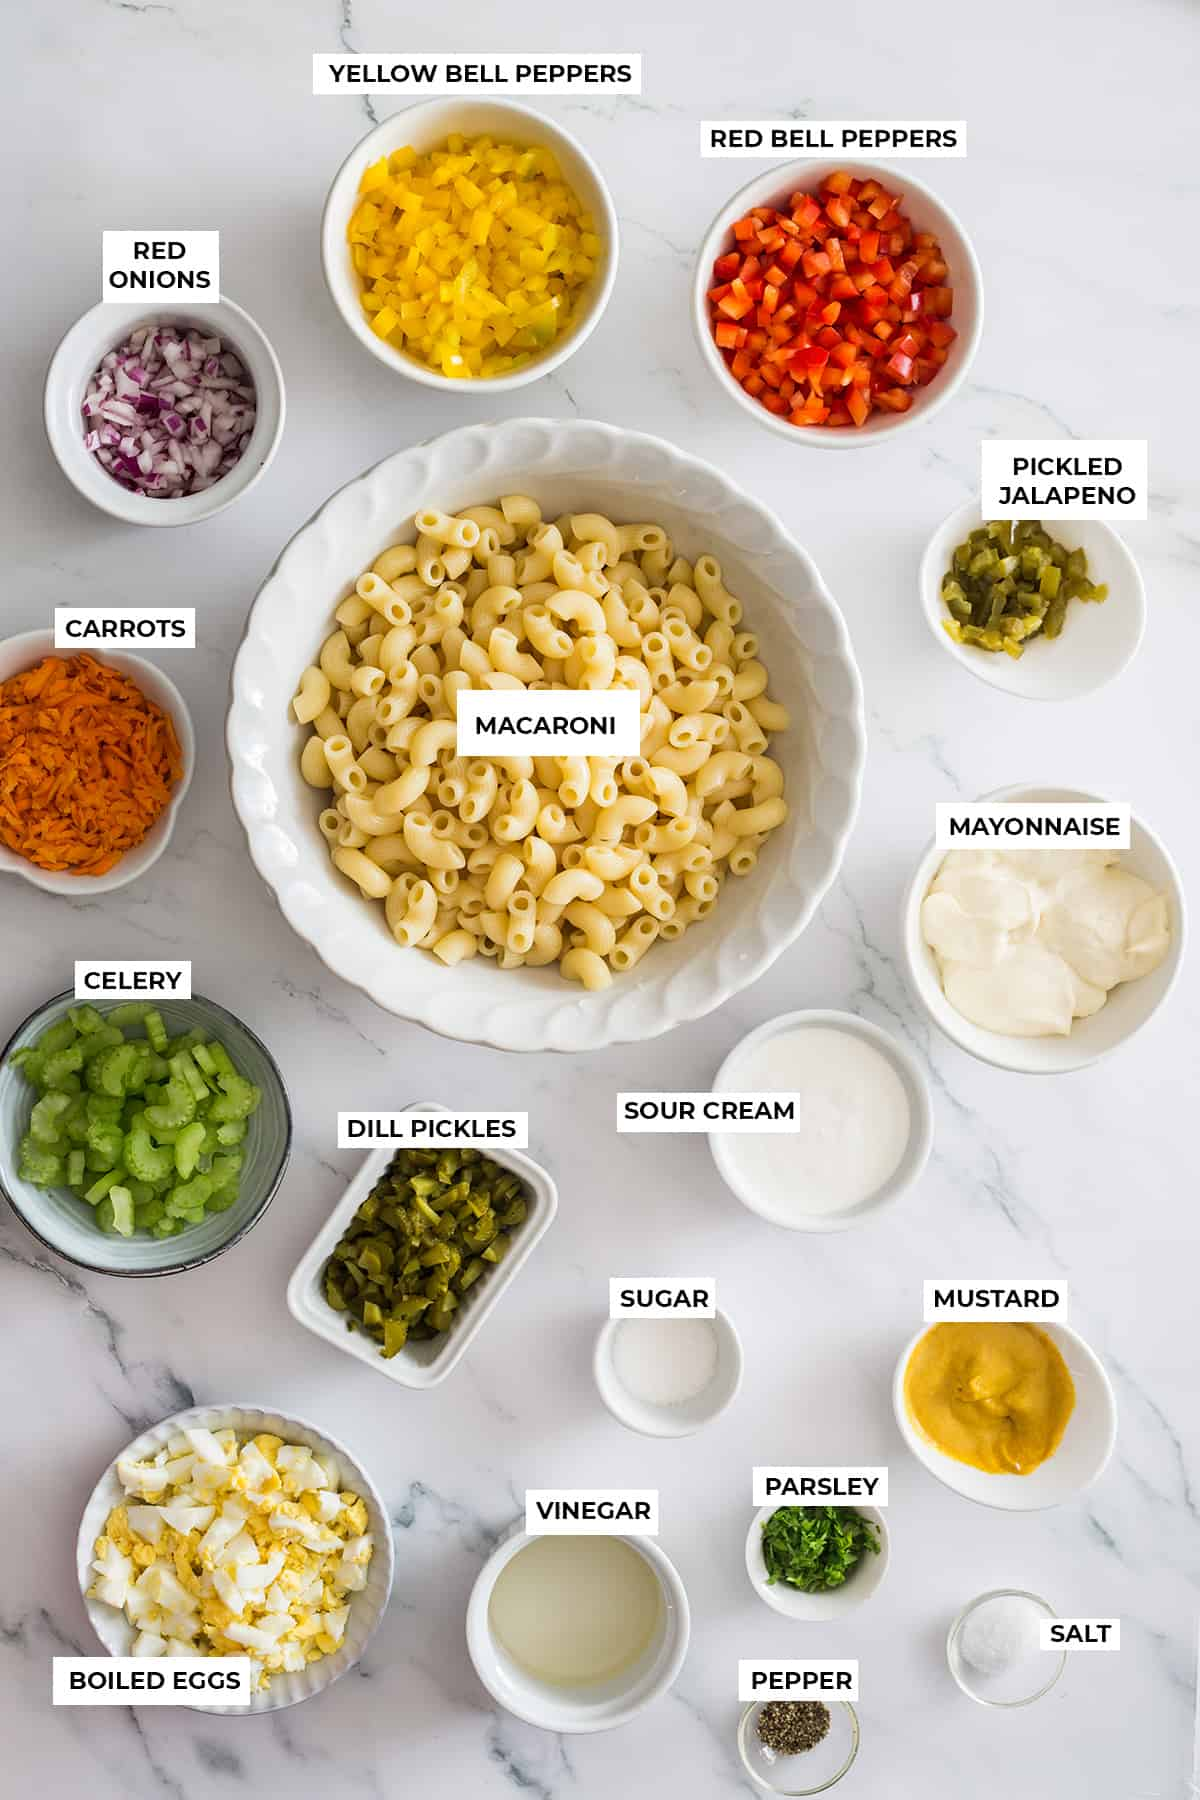 All ingredients displayed on bowls on a marble surface.